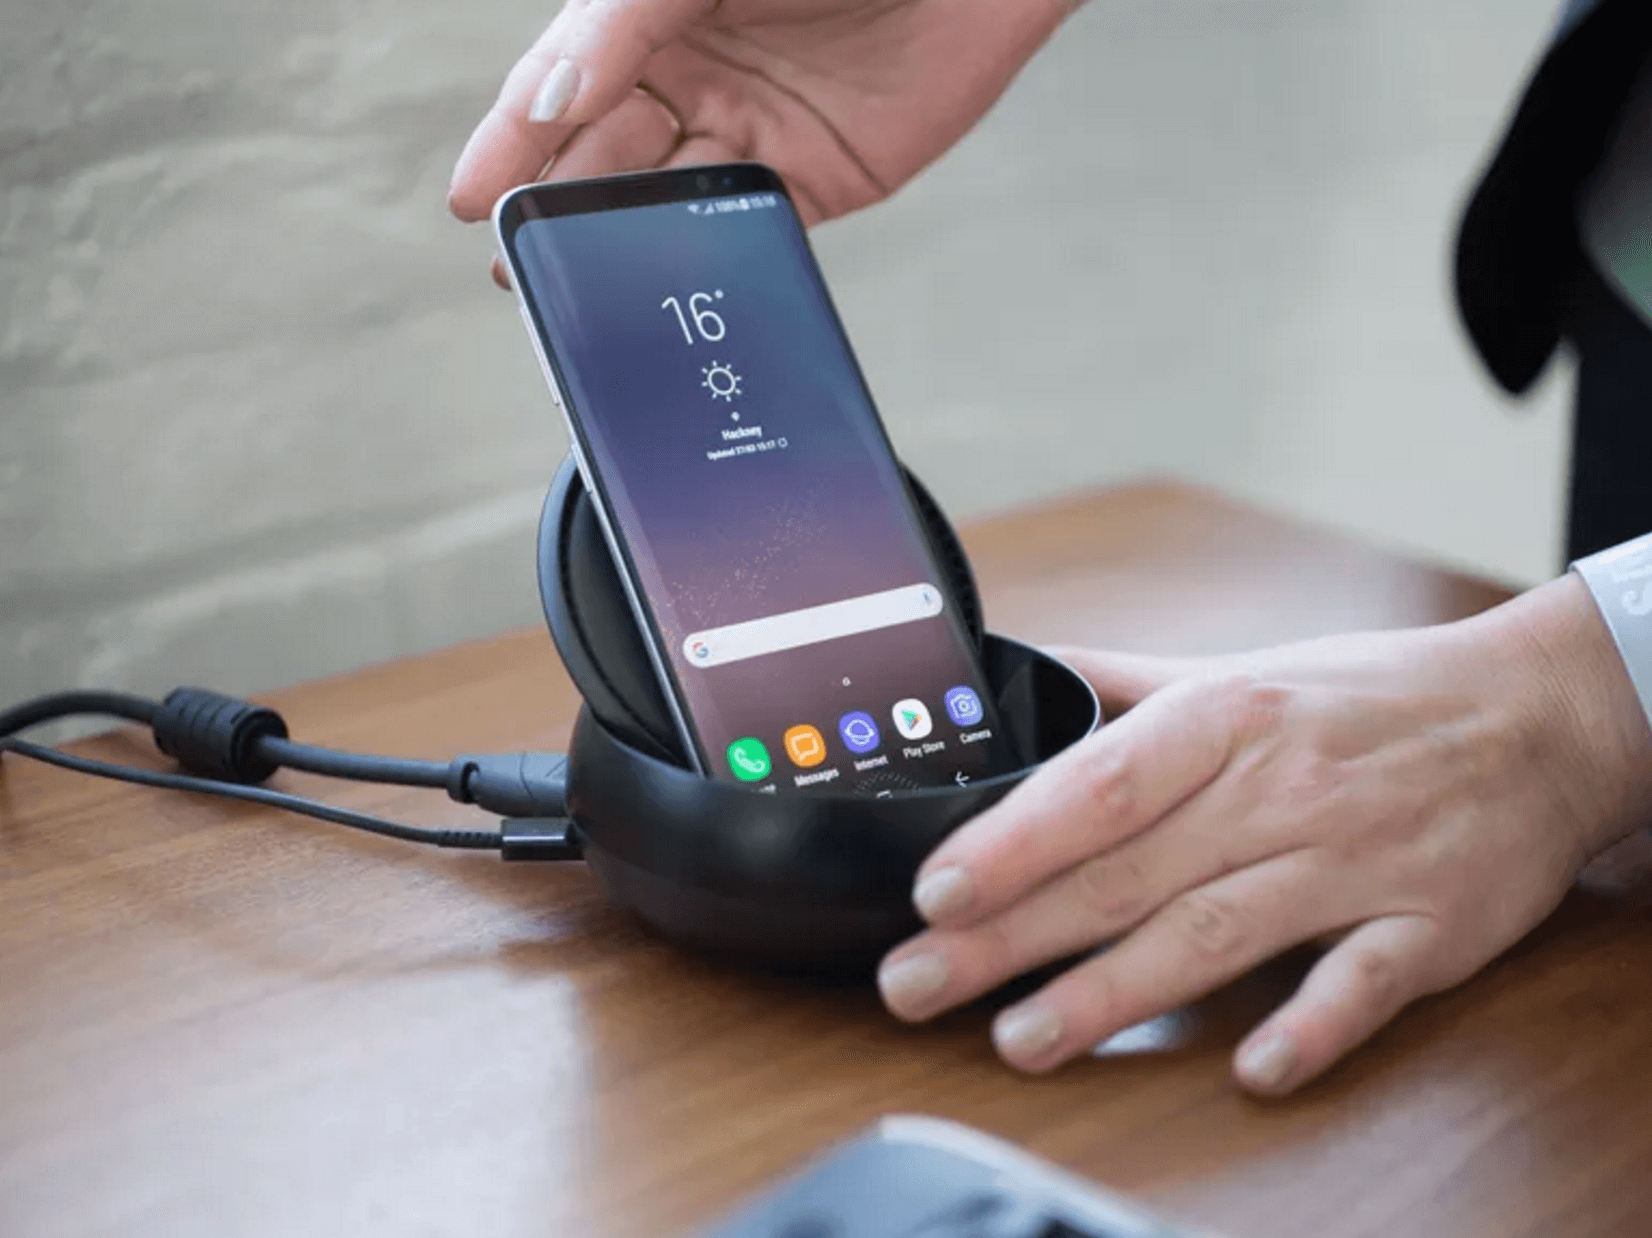 Source: thetechterminus - Galaxy S8 comes with the wireless new charging capabilities.